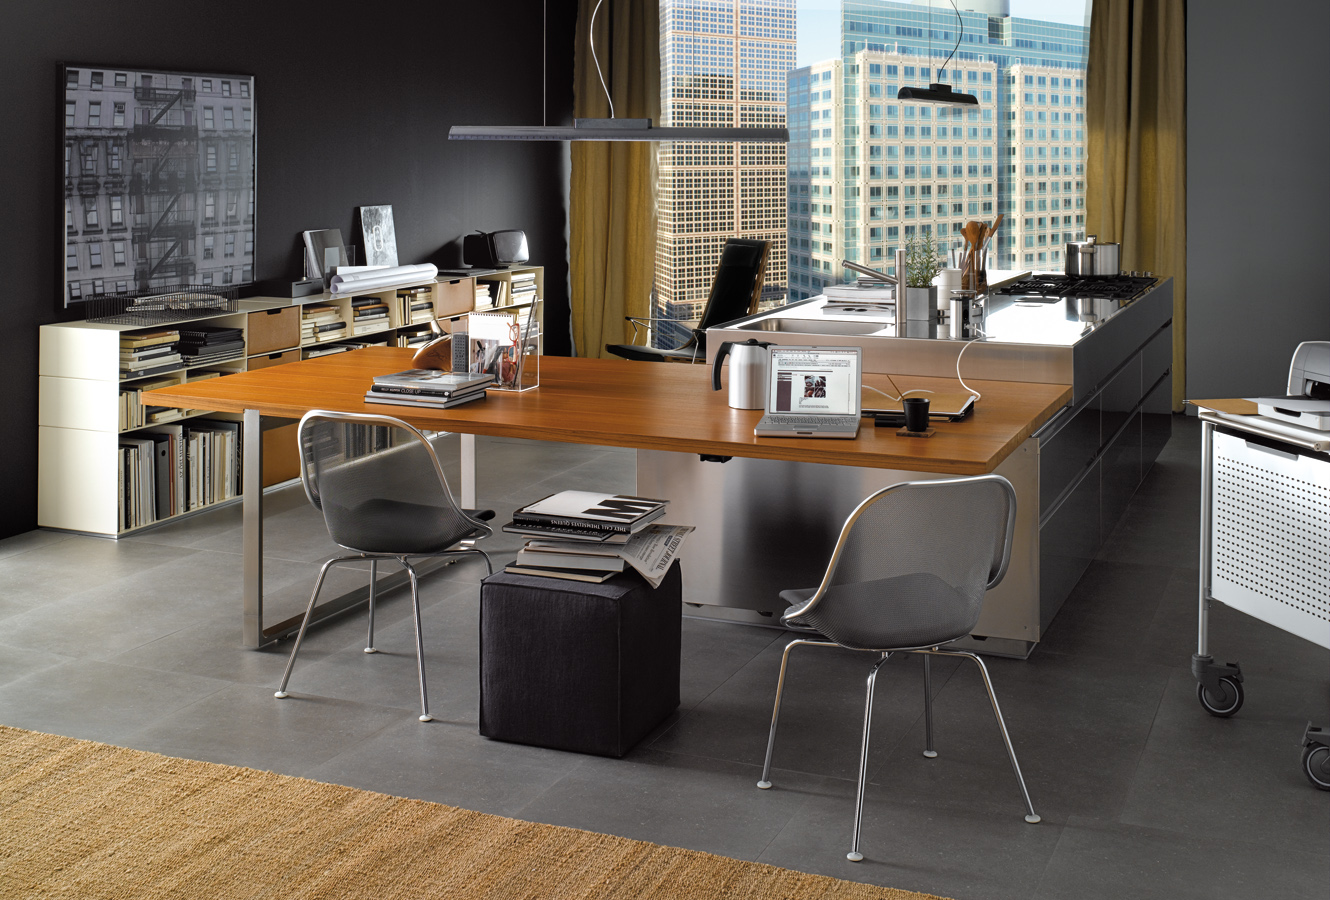 Modern italian kitchen design from arclinea for Office kitchen design